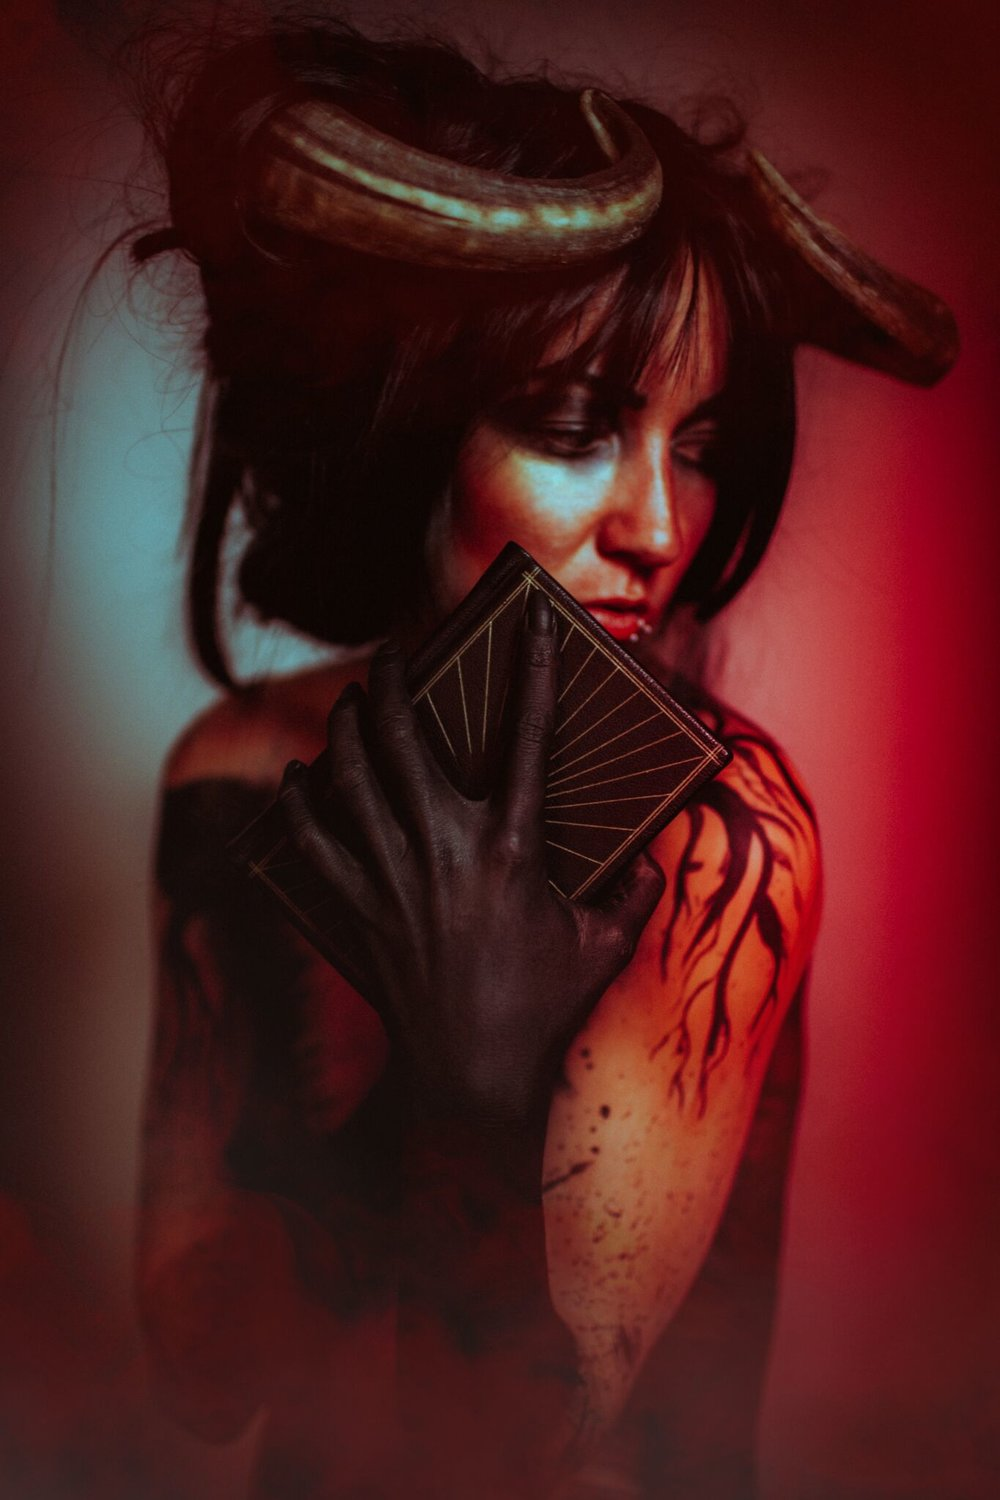 katrin-albert-photography-mccal-strange-halloween-selects-highres-11_preview.jpeg